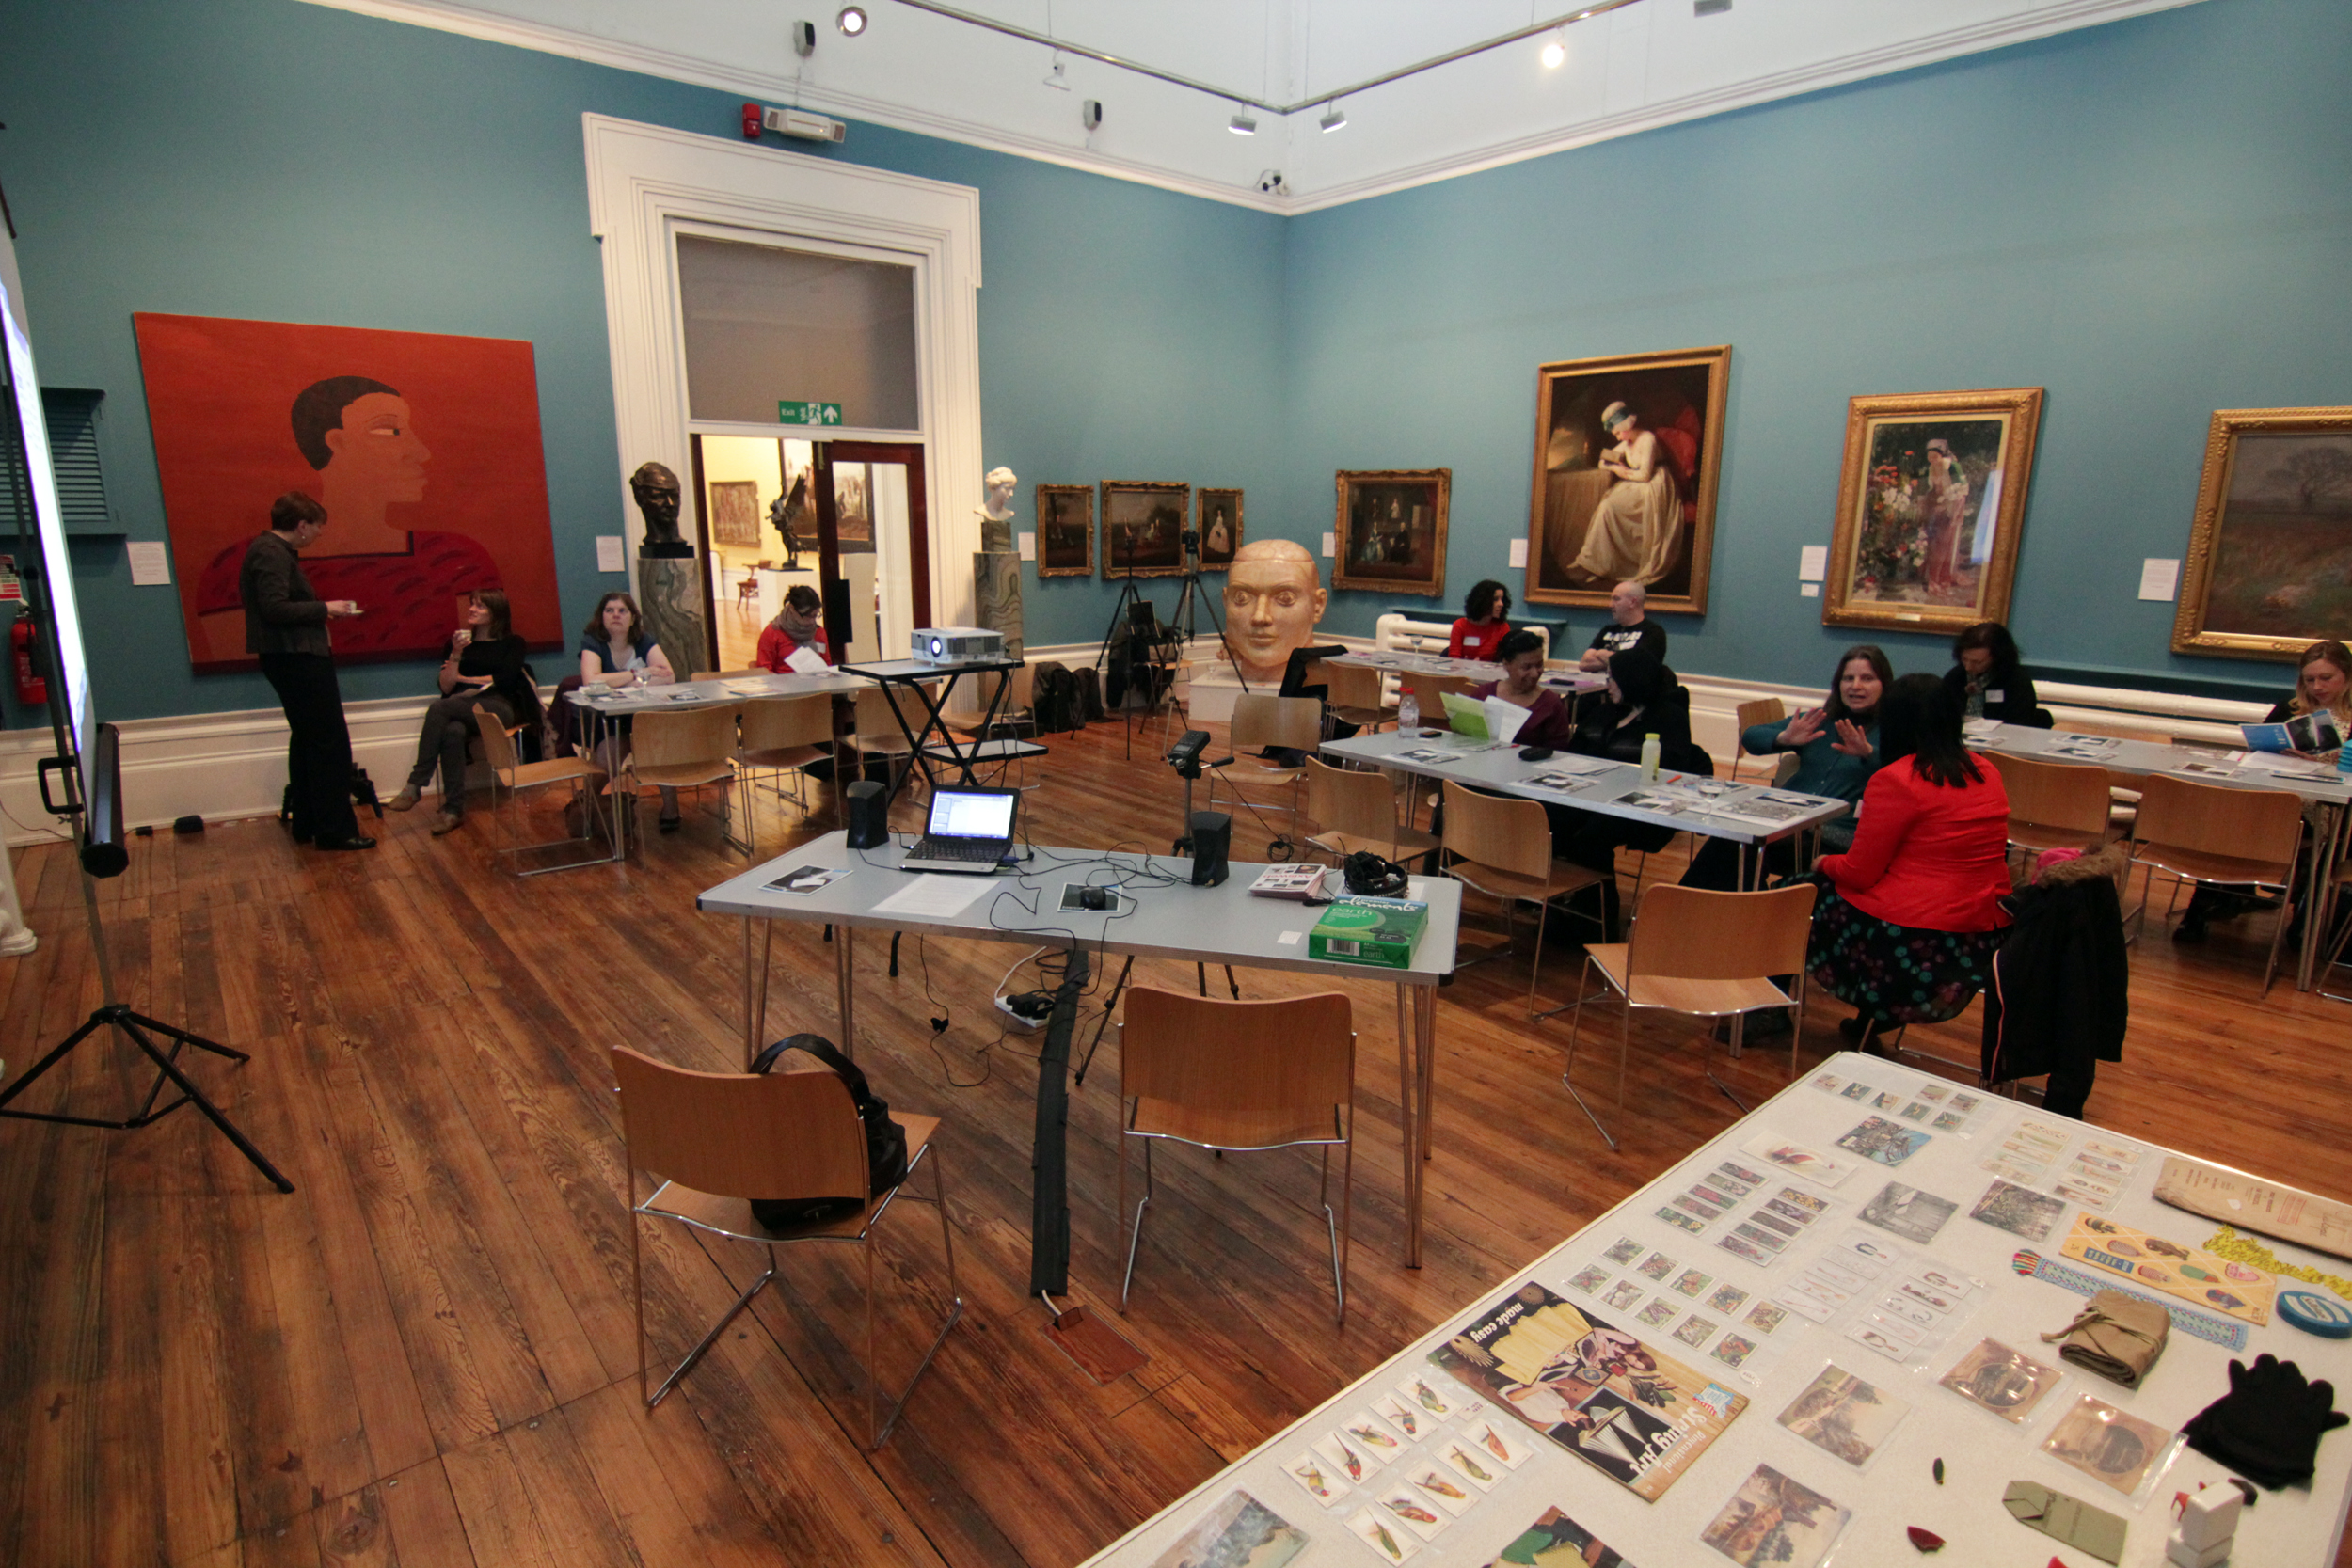 Artists And Museums The Collecting And Archiving Impulse